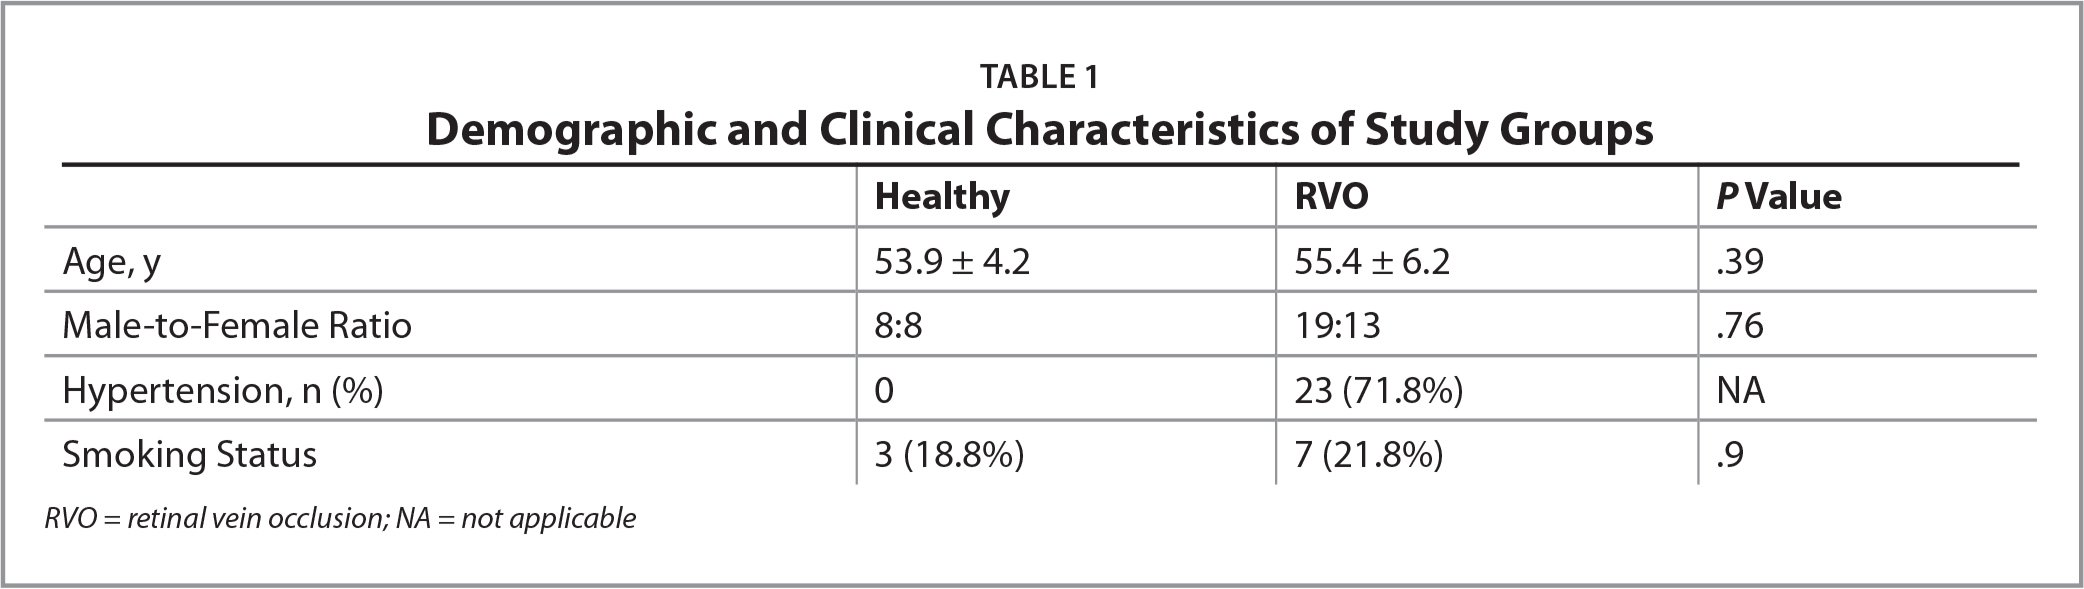 Demographic and Clinical Characteristics of Study Groups